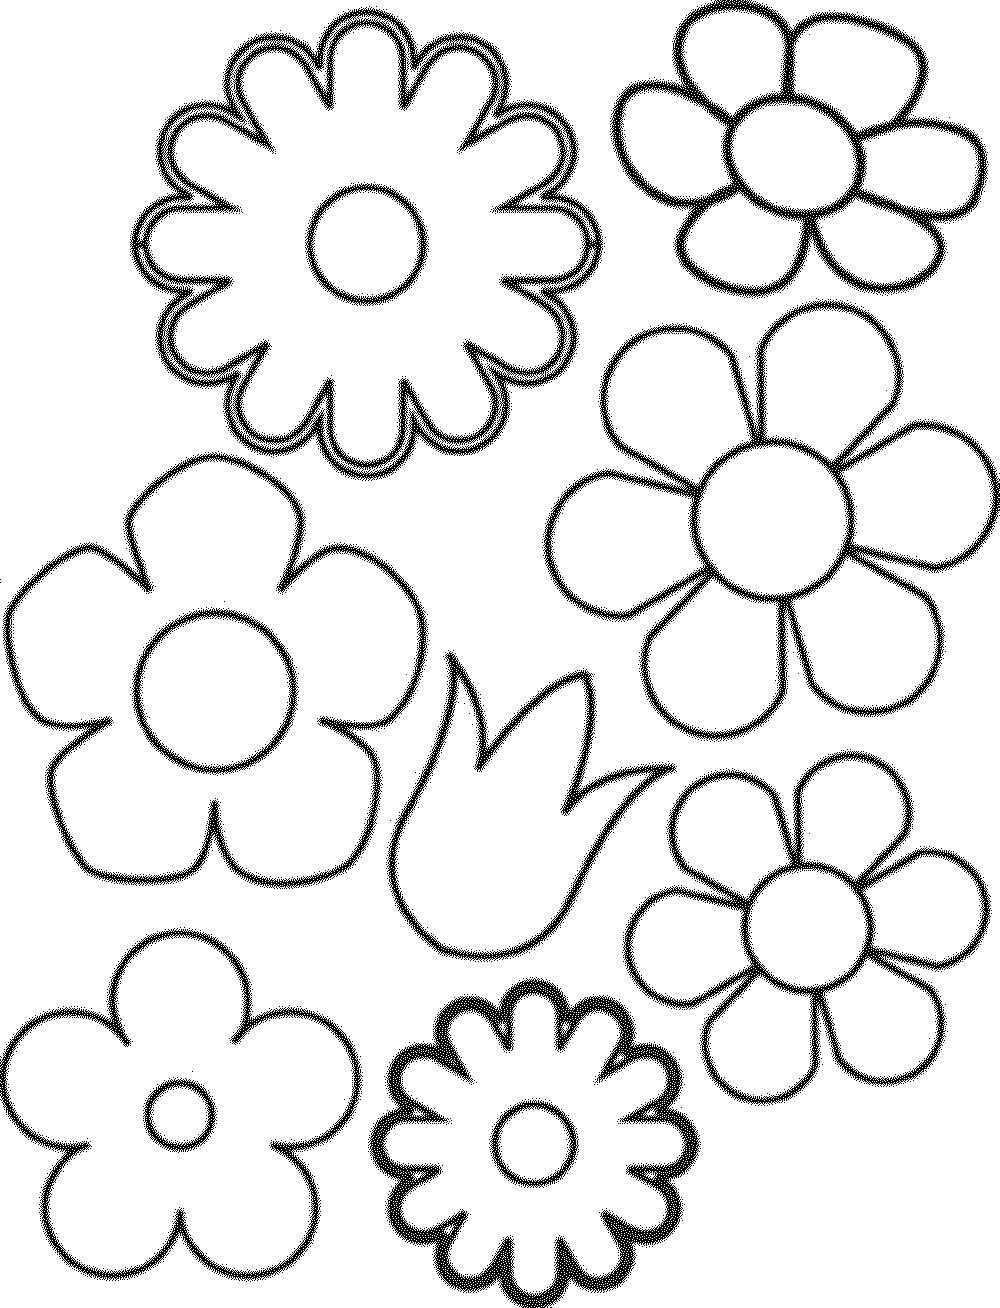 free printable easy flower coloring pages | Print & Download - Some Common Variations of the Flower ...